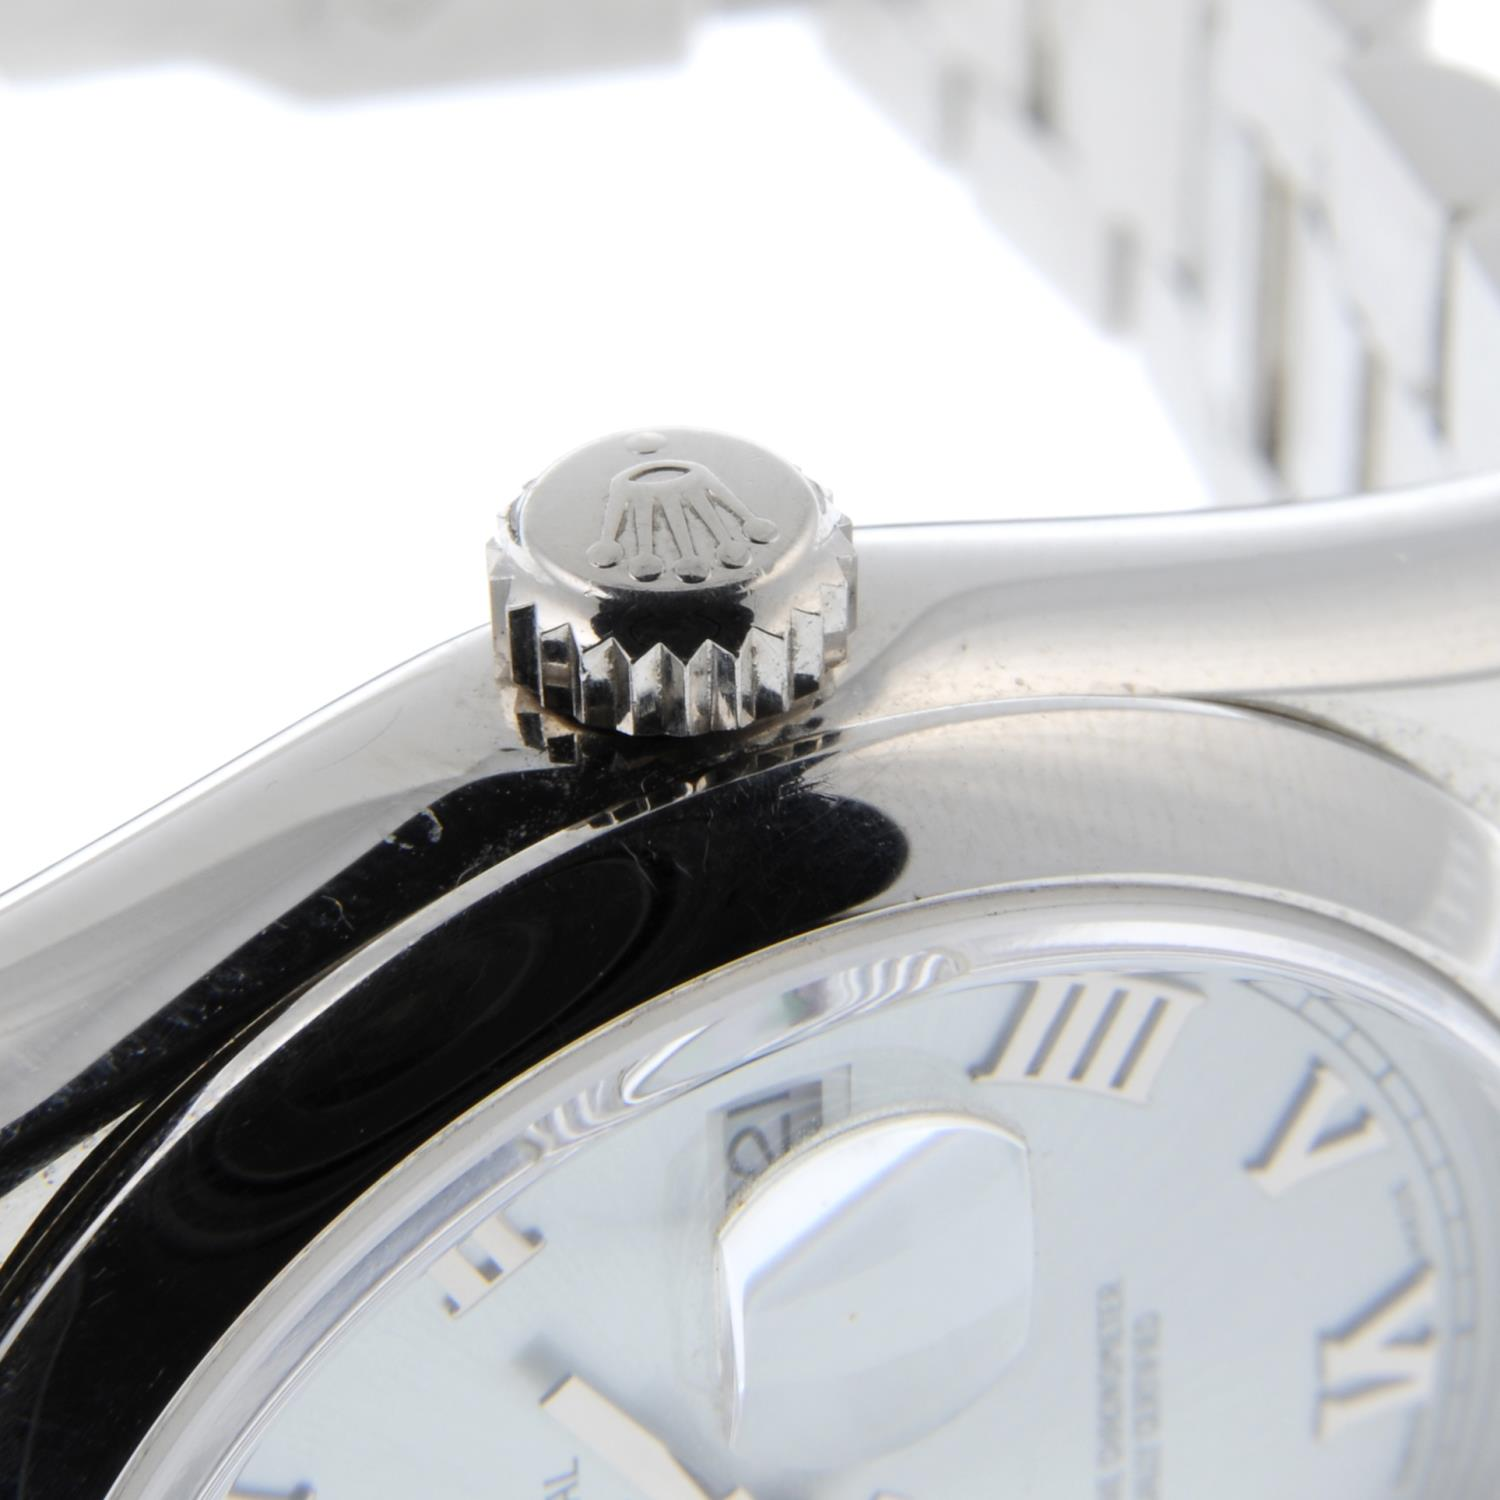 ROLEX - an Oyster Perpetual Day-Date bracelet watch. - Image 5 of 5